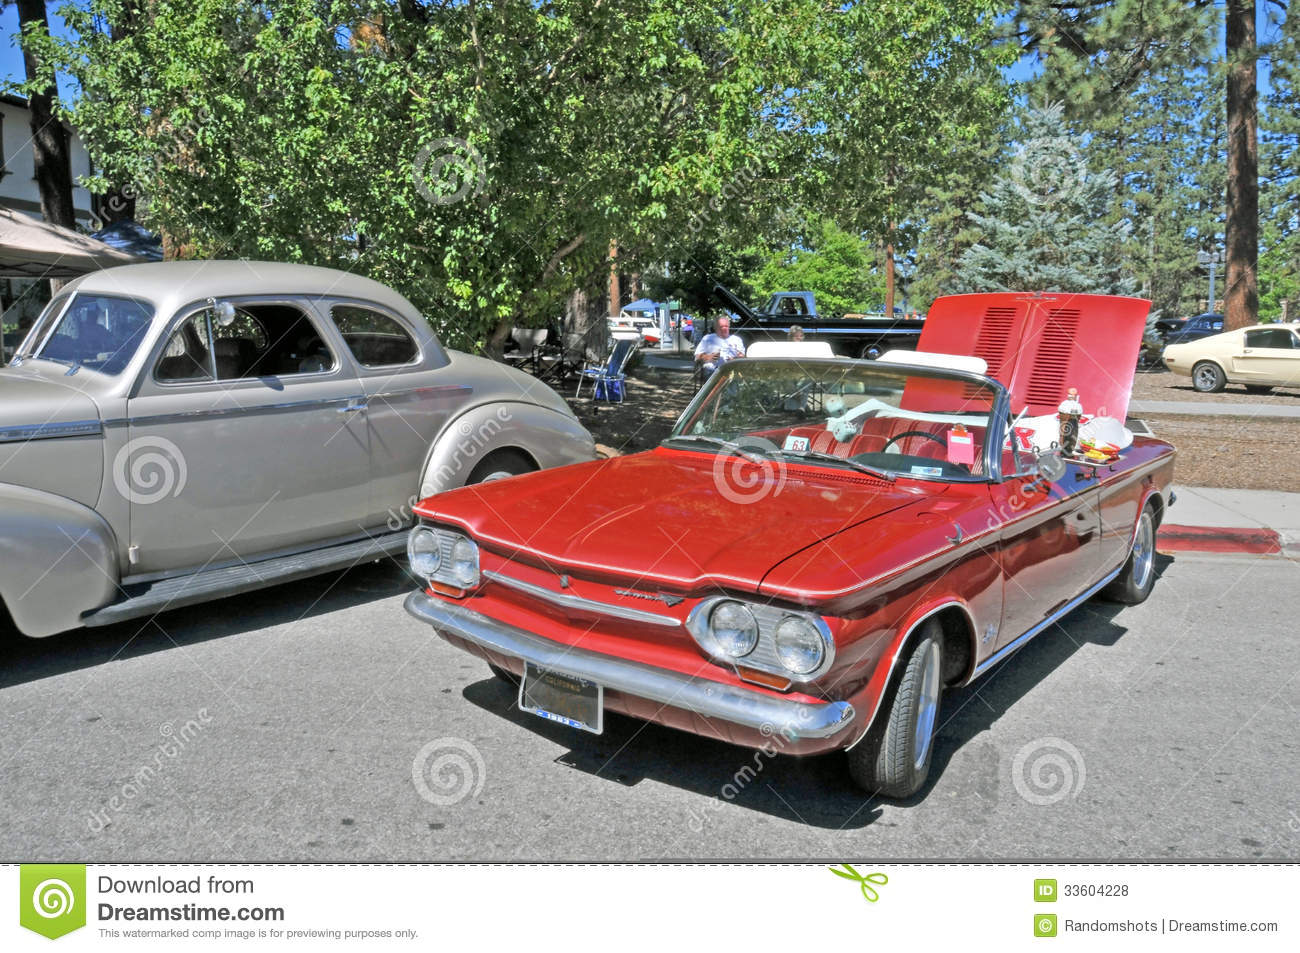 1963 Chevrolet Corvair Editorial Stock Photo - Image: 33604228